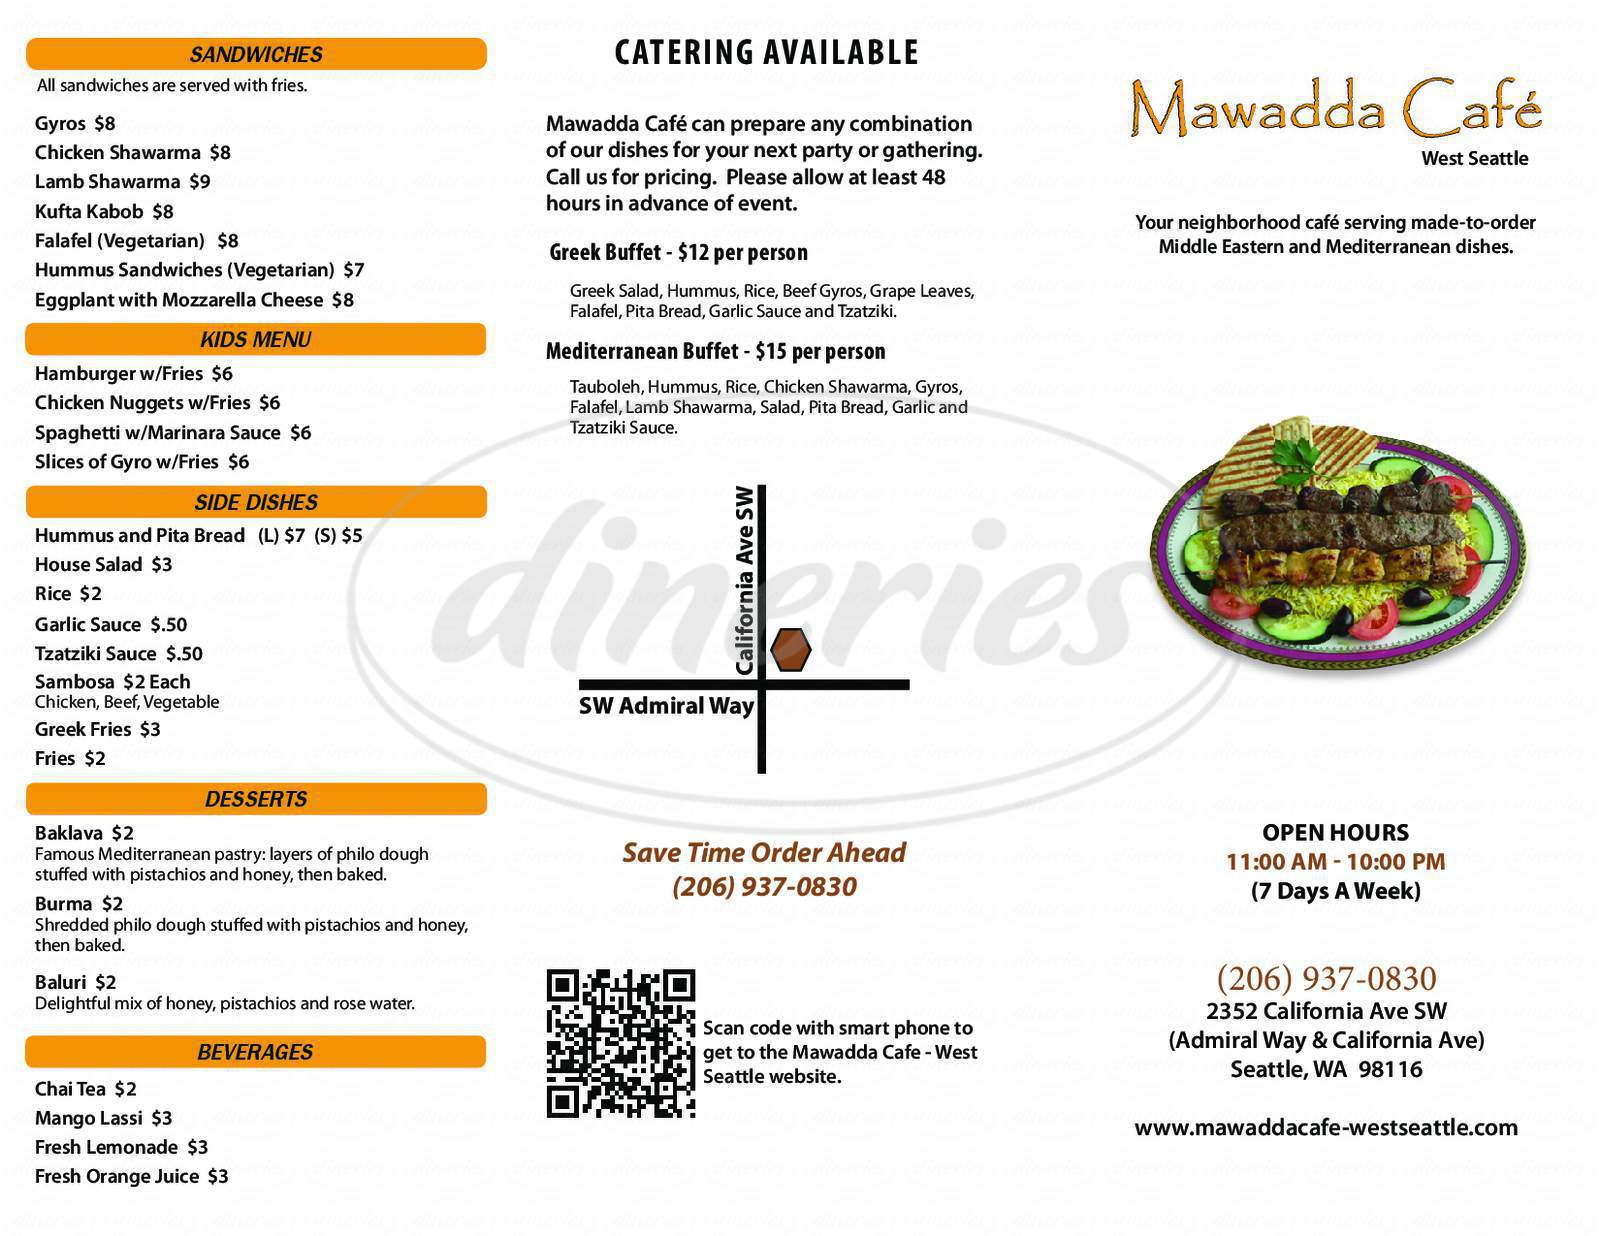 menu for Mawadda Cafe